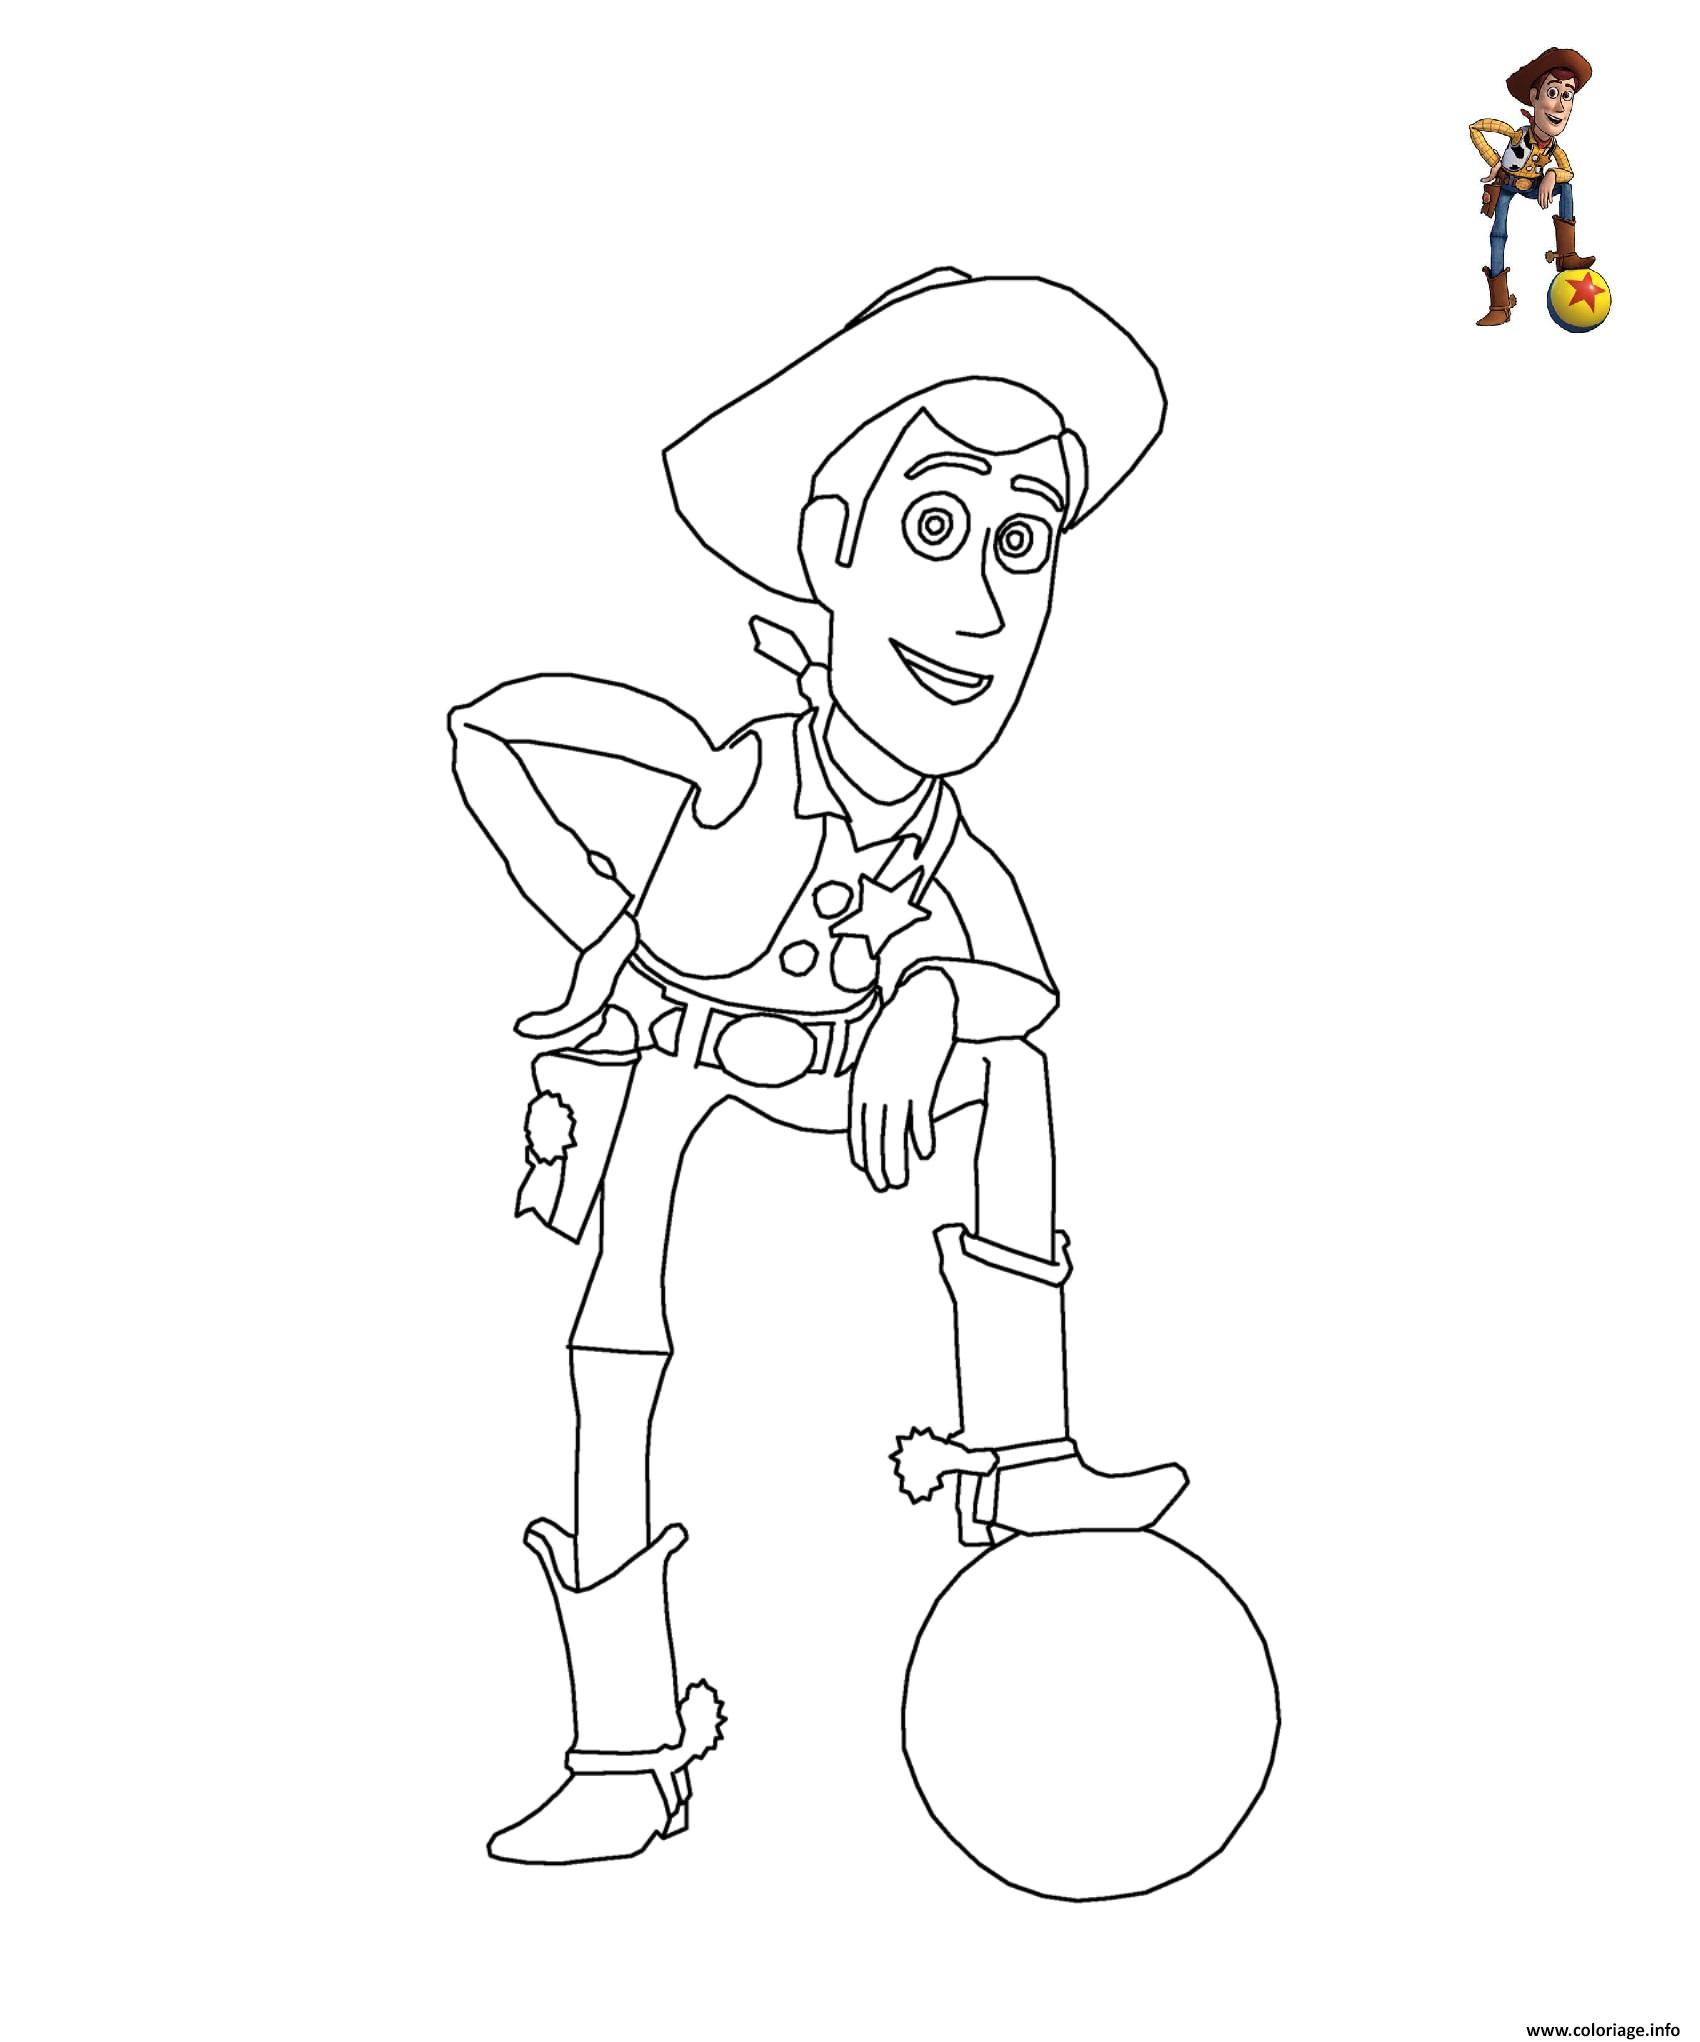 Coloriage Disney Woody.Coloriage Sherif Woody Toy Story Disney Jecolorie Com